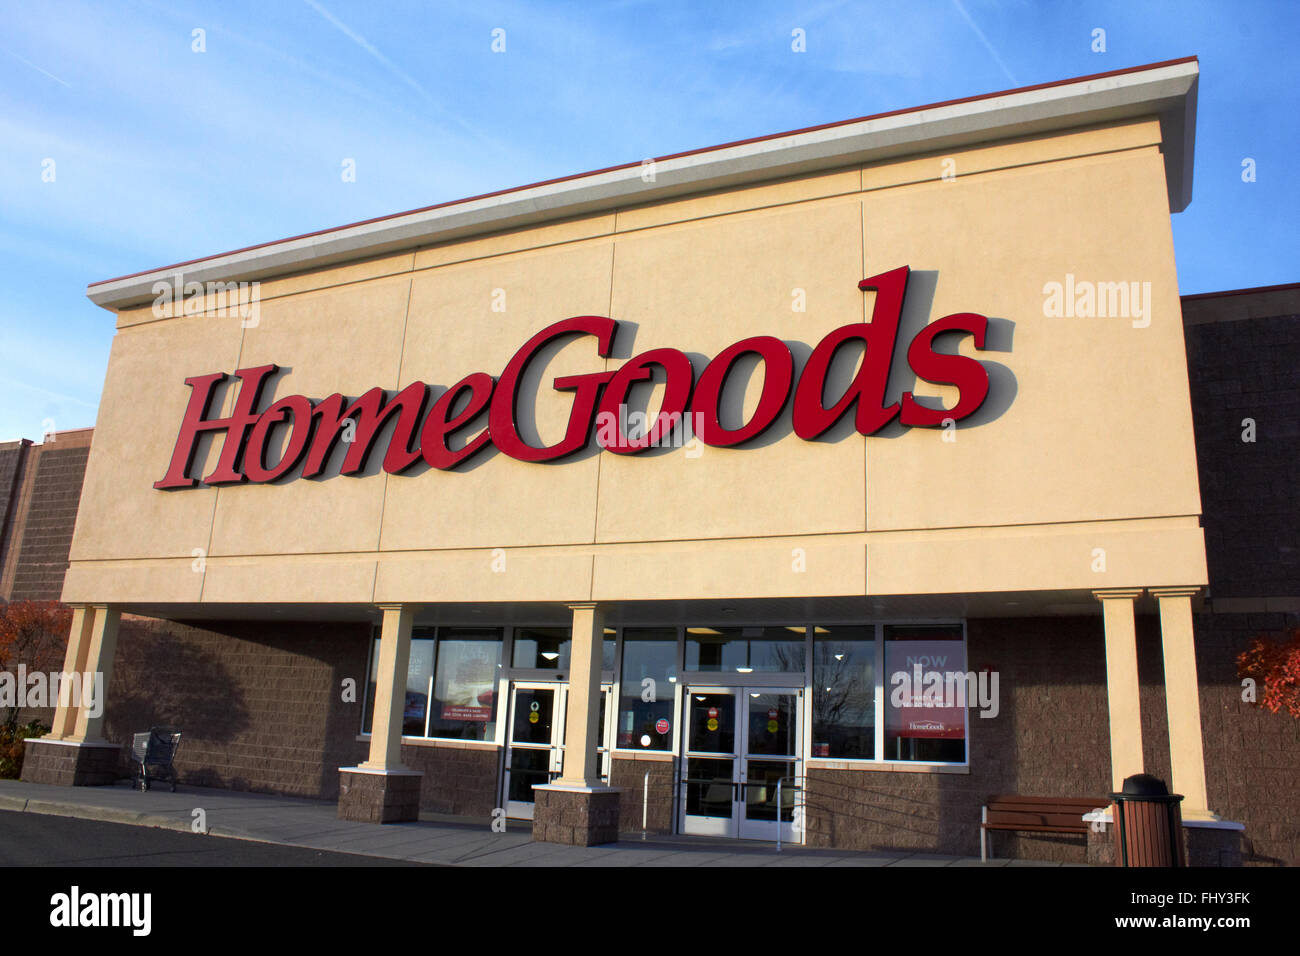 Home Goods Store Front   Stock Image. Home Goods Store Stock Photos   Home Goods Store Stock Images   Alamy